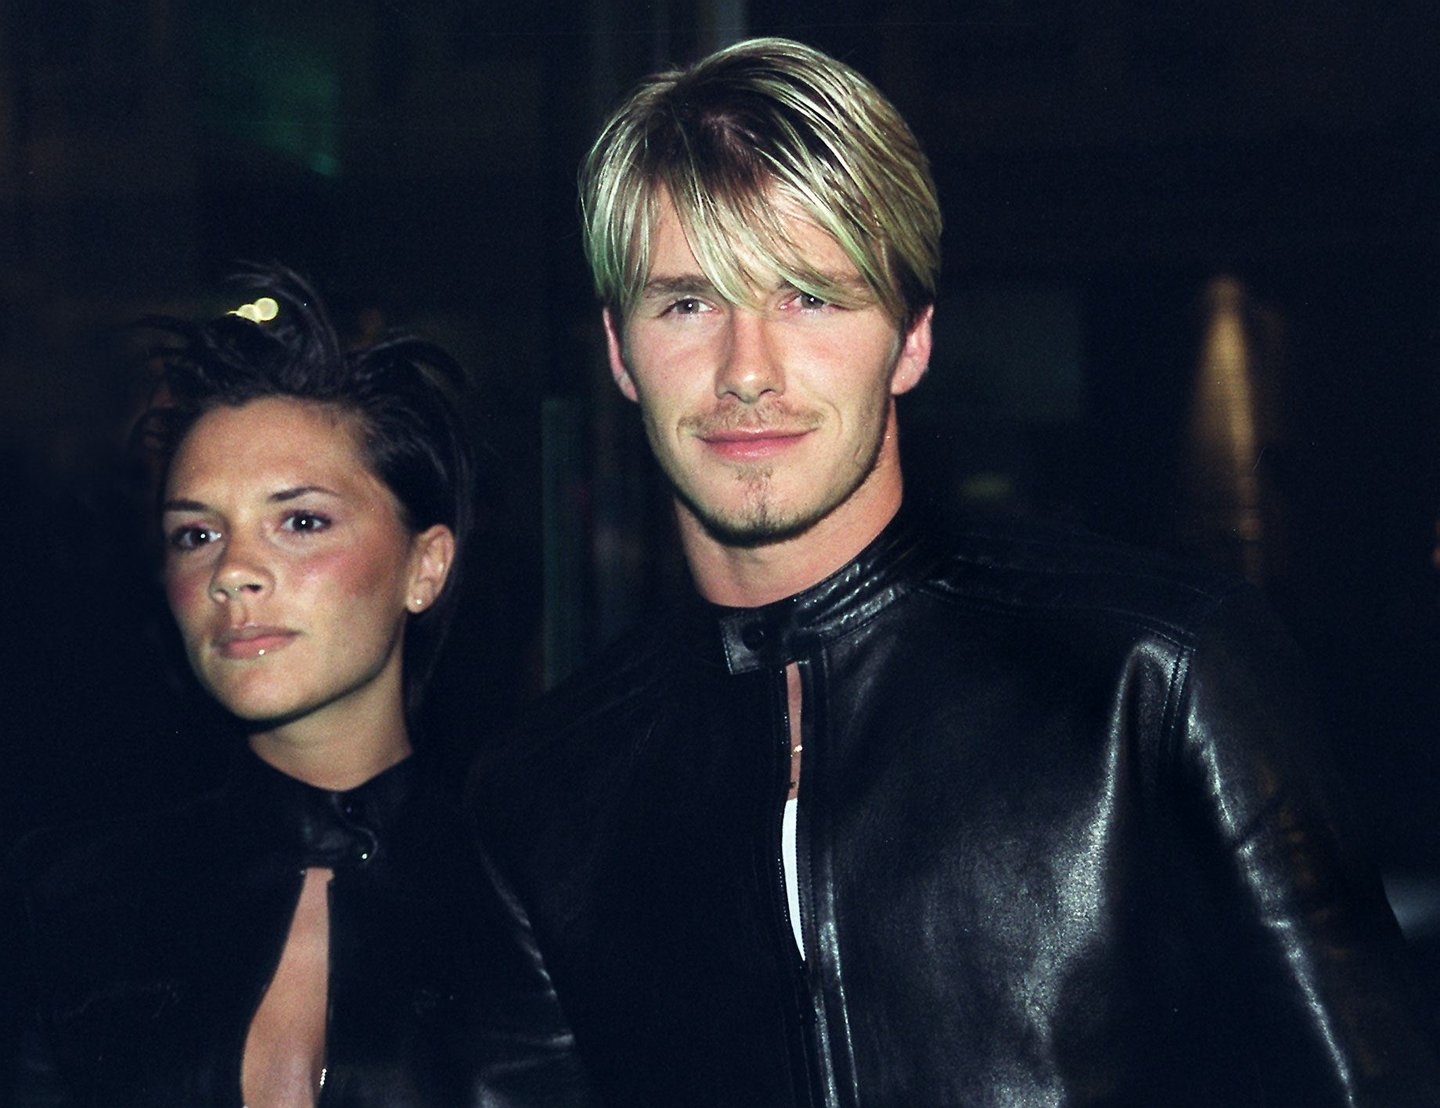 """Spice Girls Victoria Adams (L) arrives with her husband, Manchester United and England star David Beckham (R), to a Versace star-studded reception hosted by Donatella Versace in London late Friday 11 June 1999. The reception comes after the Versace """"Diamonds are forever"""" charity fashion event 09 June which raised funds for three charities including the Prince's Foundation for architecture and the environment. (Photo credit should read SINEAD LYNCH/AFP/Getty Images)"""